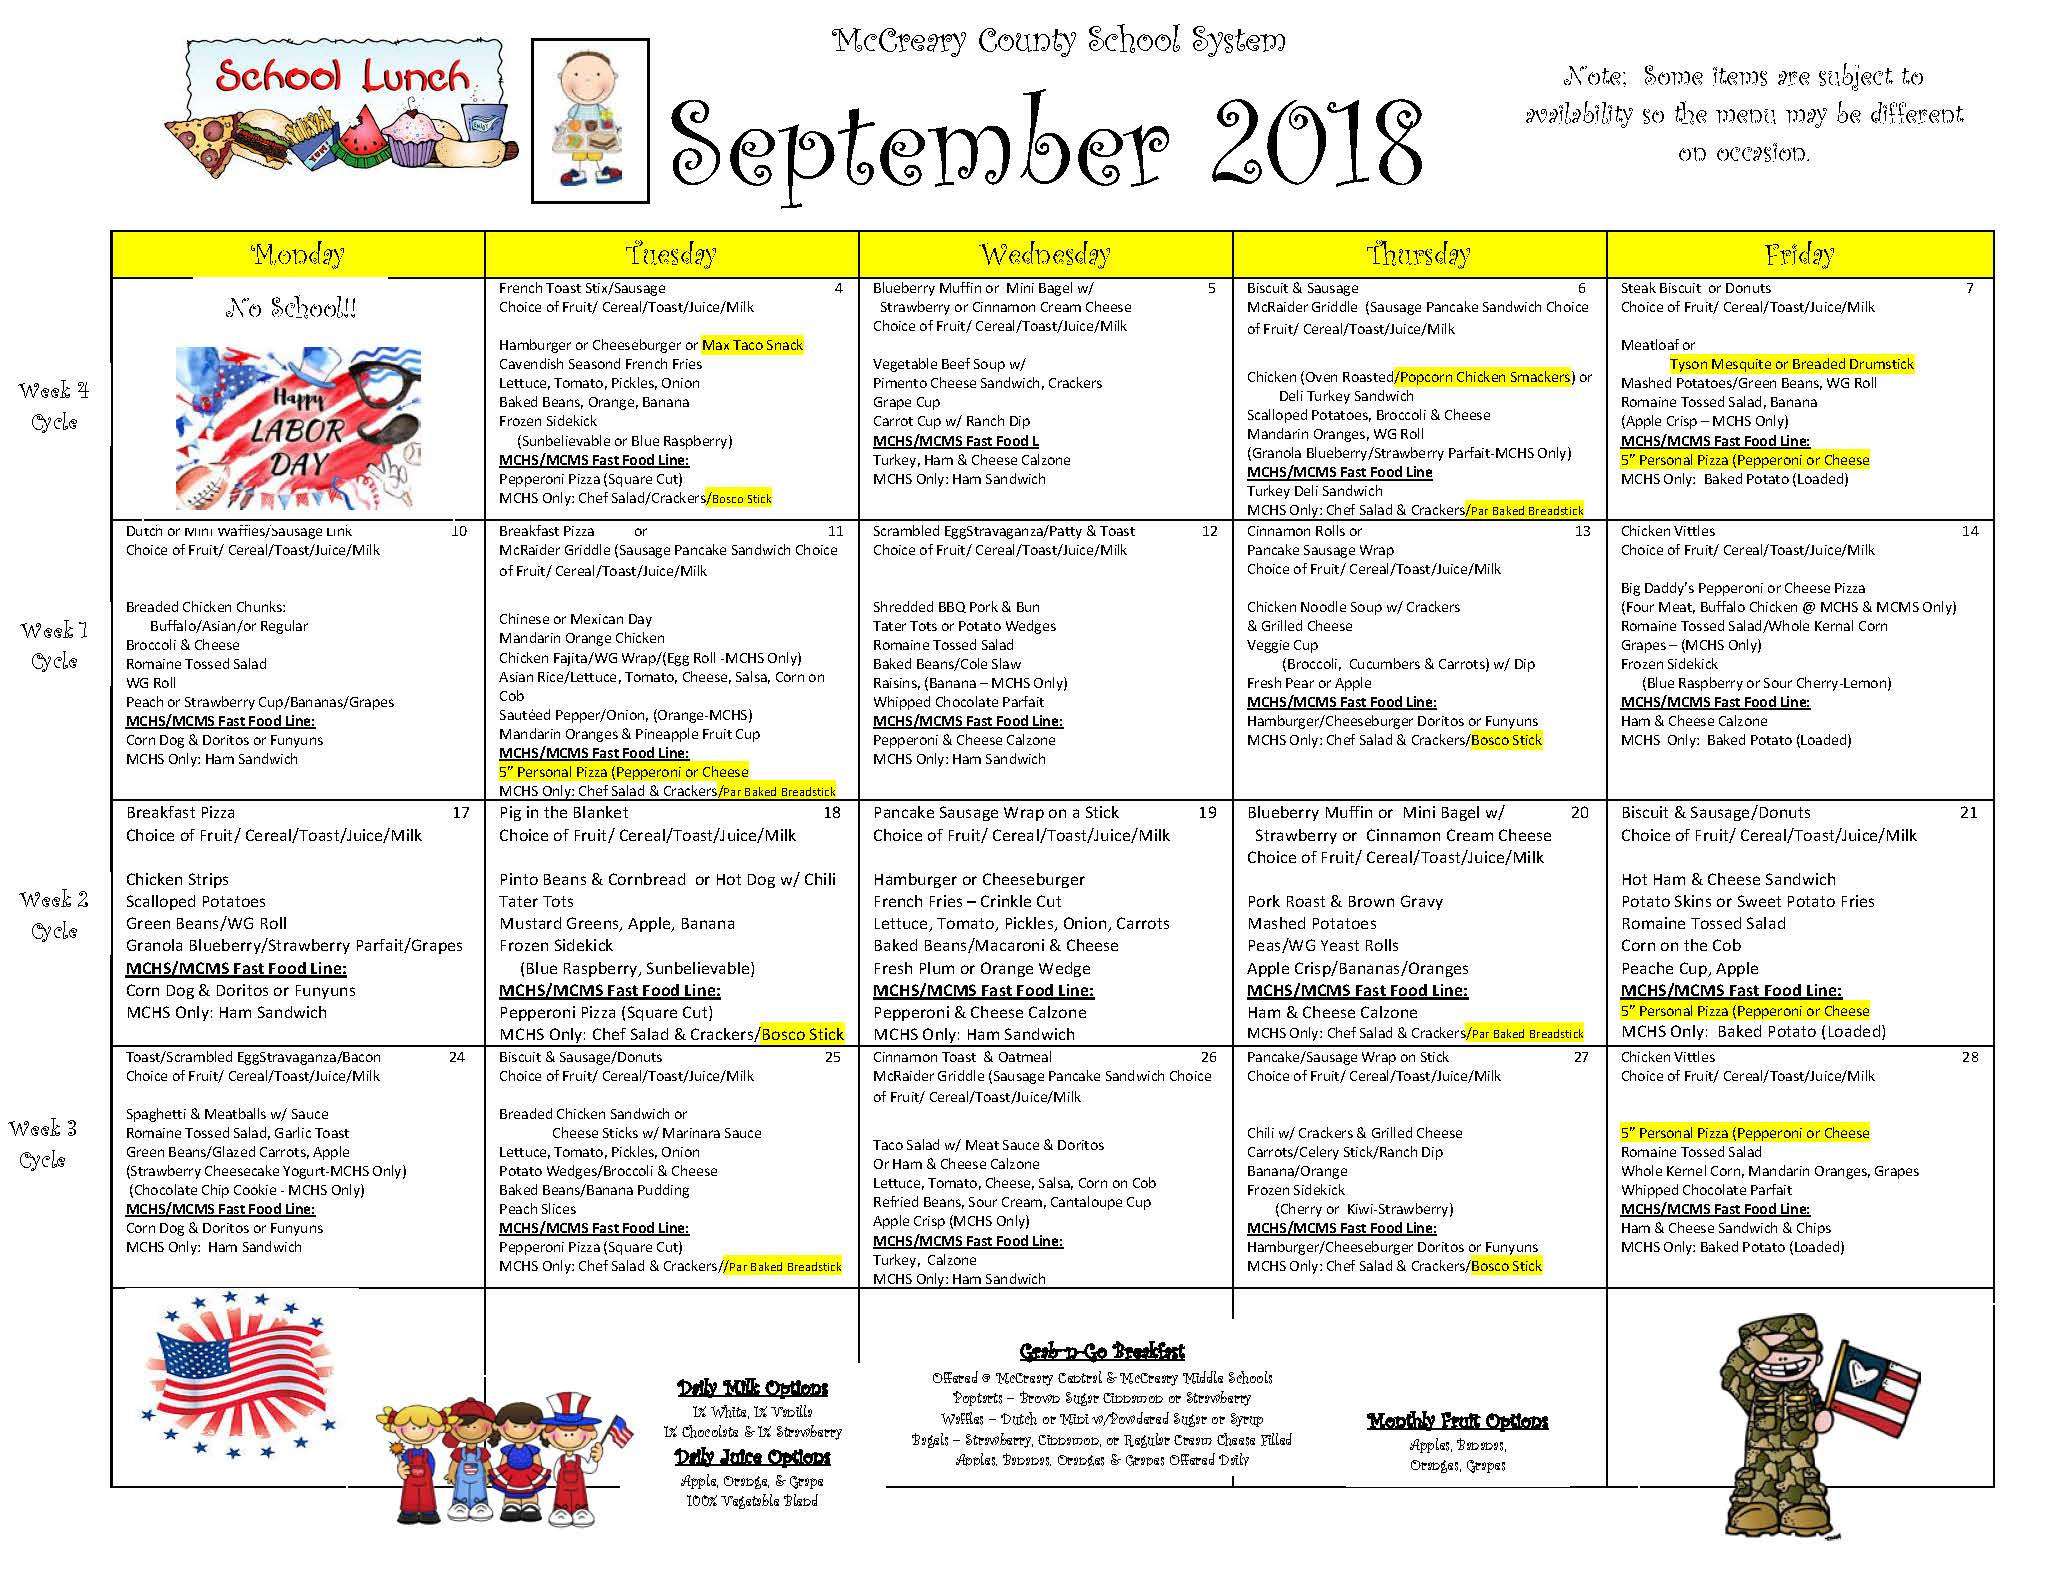 District-wide Breakfast & Lunch Menu For September 2018